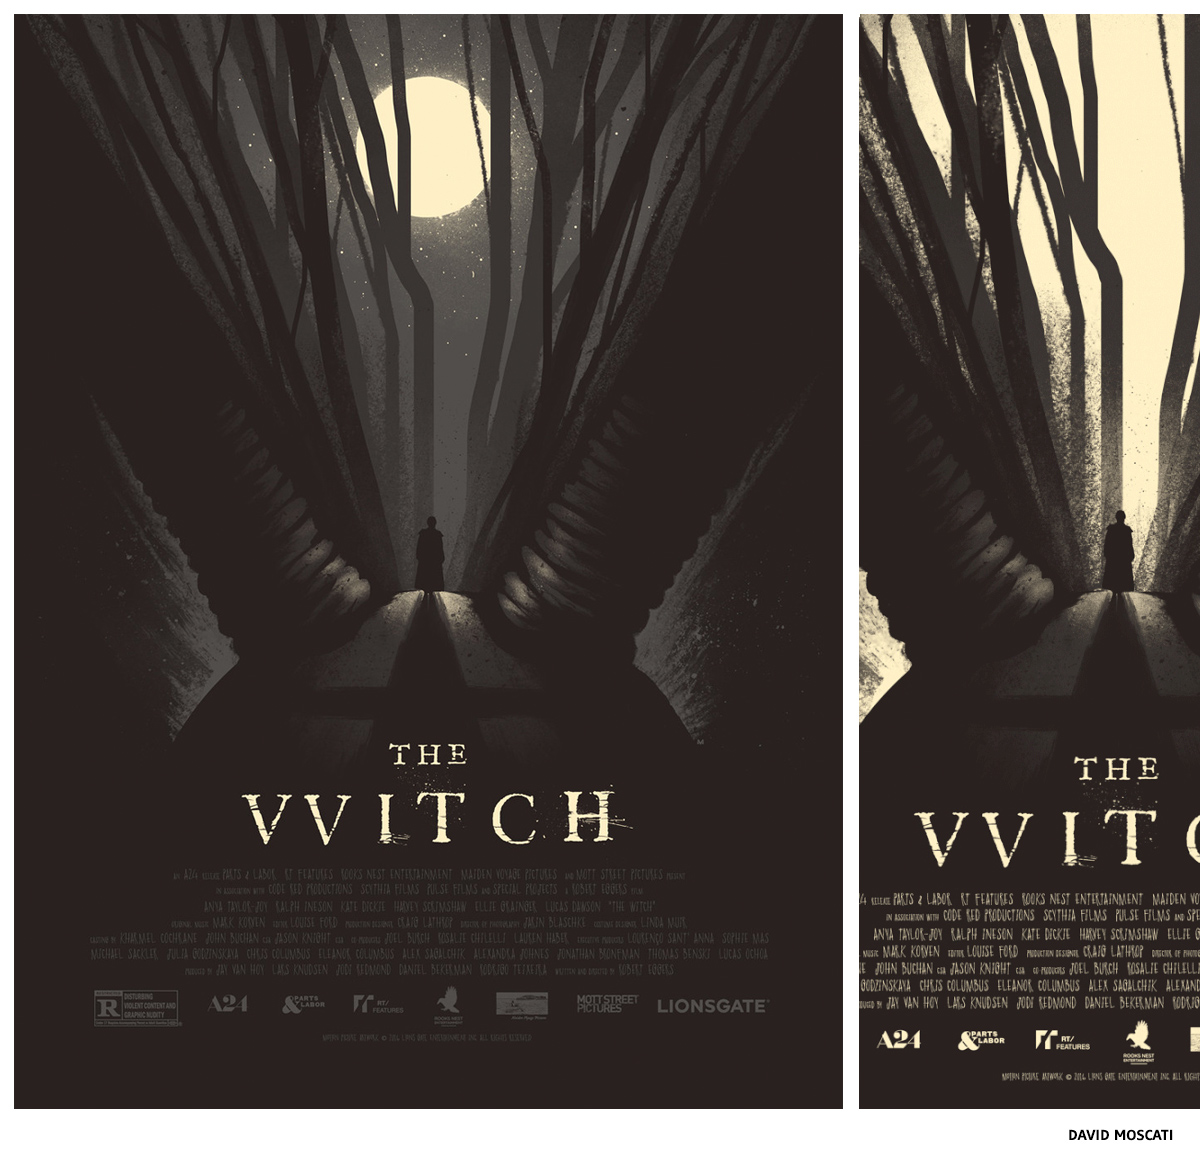 The Witch par David Moscati sérigraphie affiche